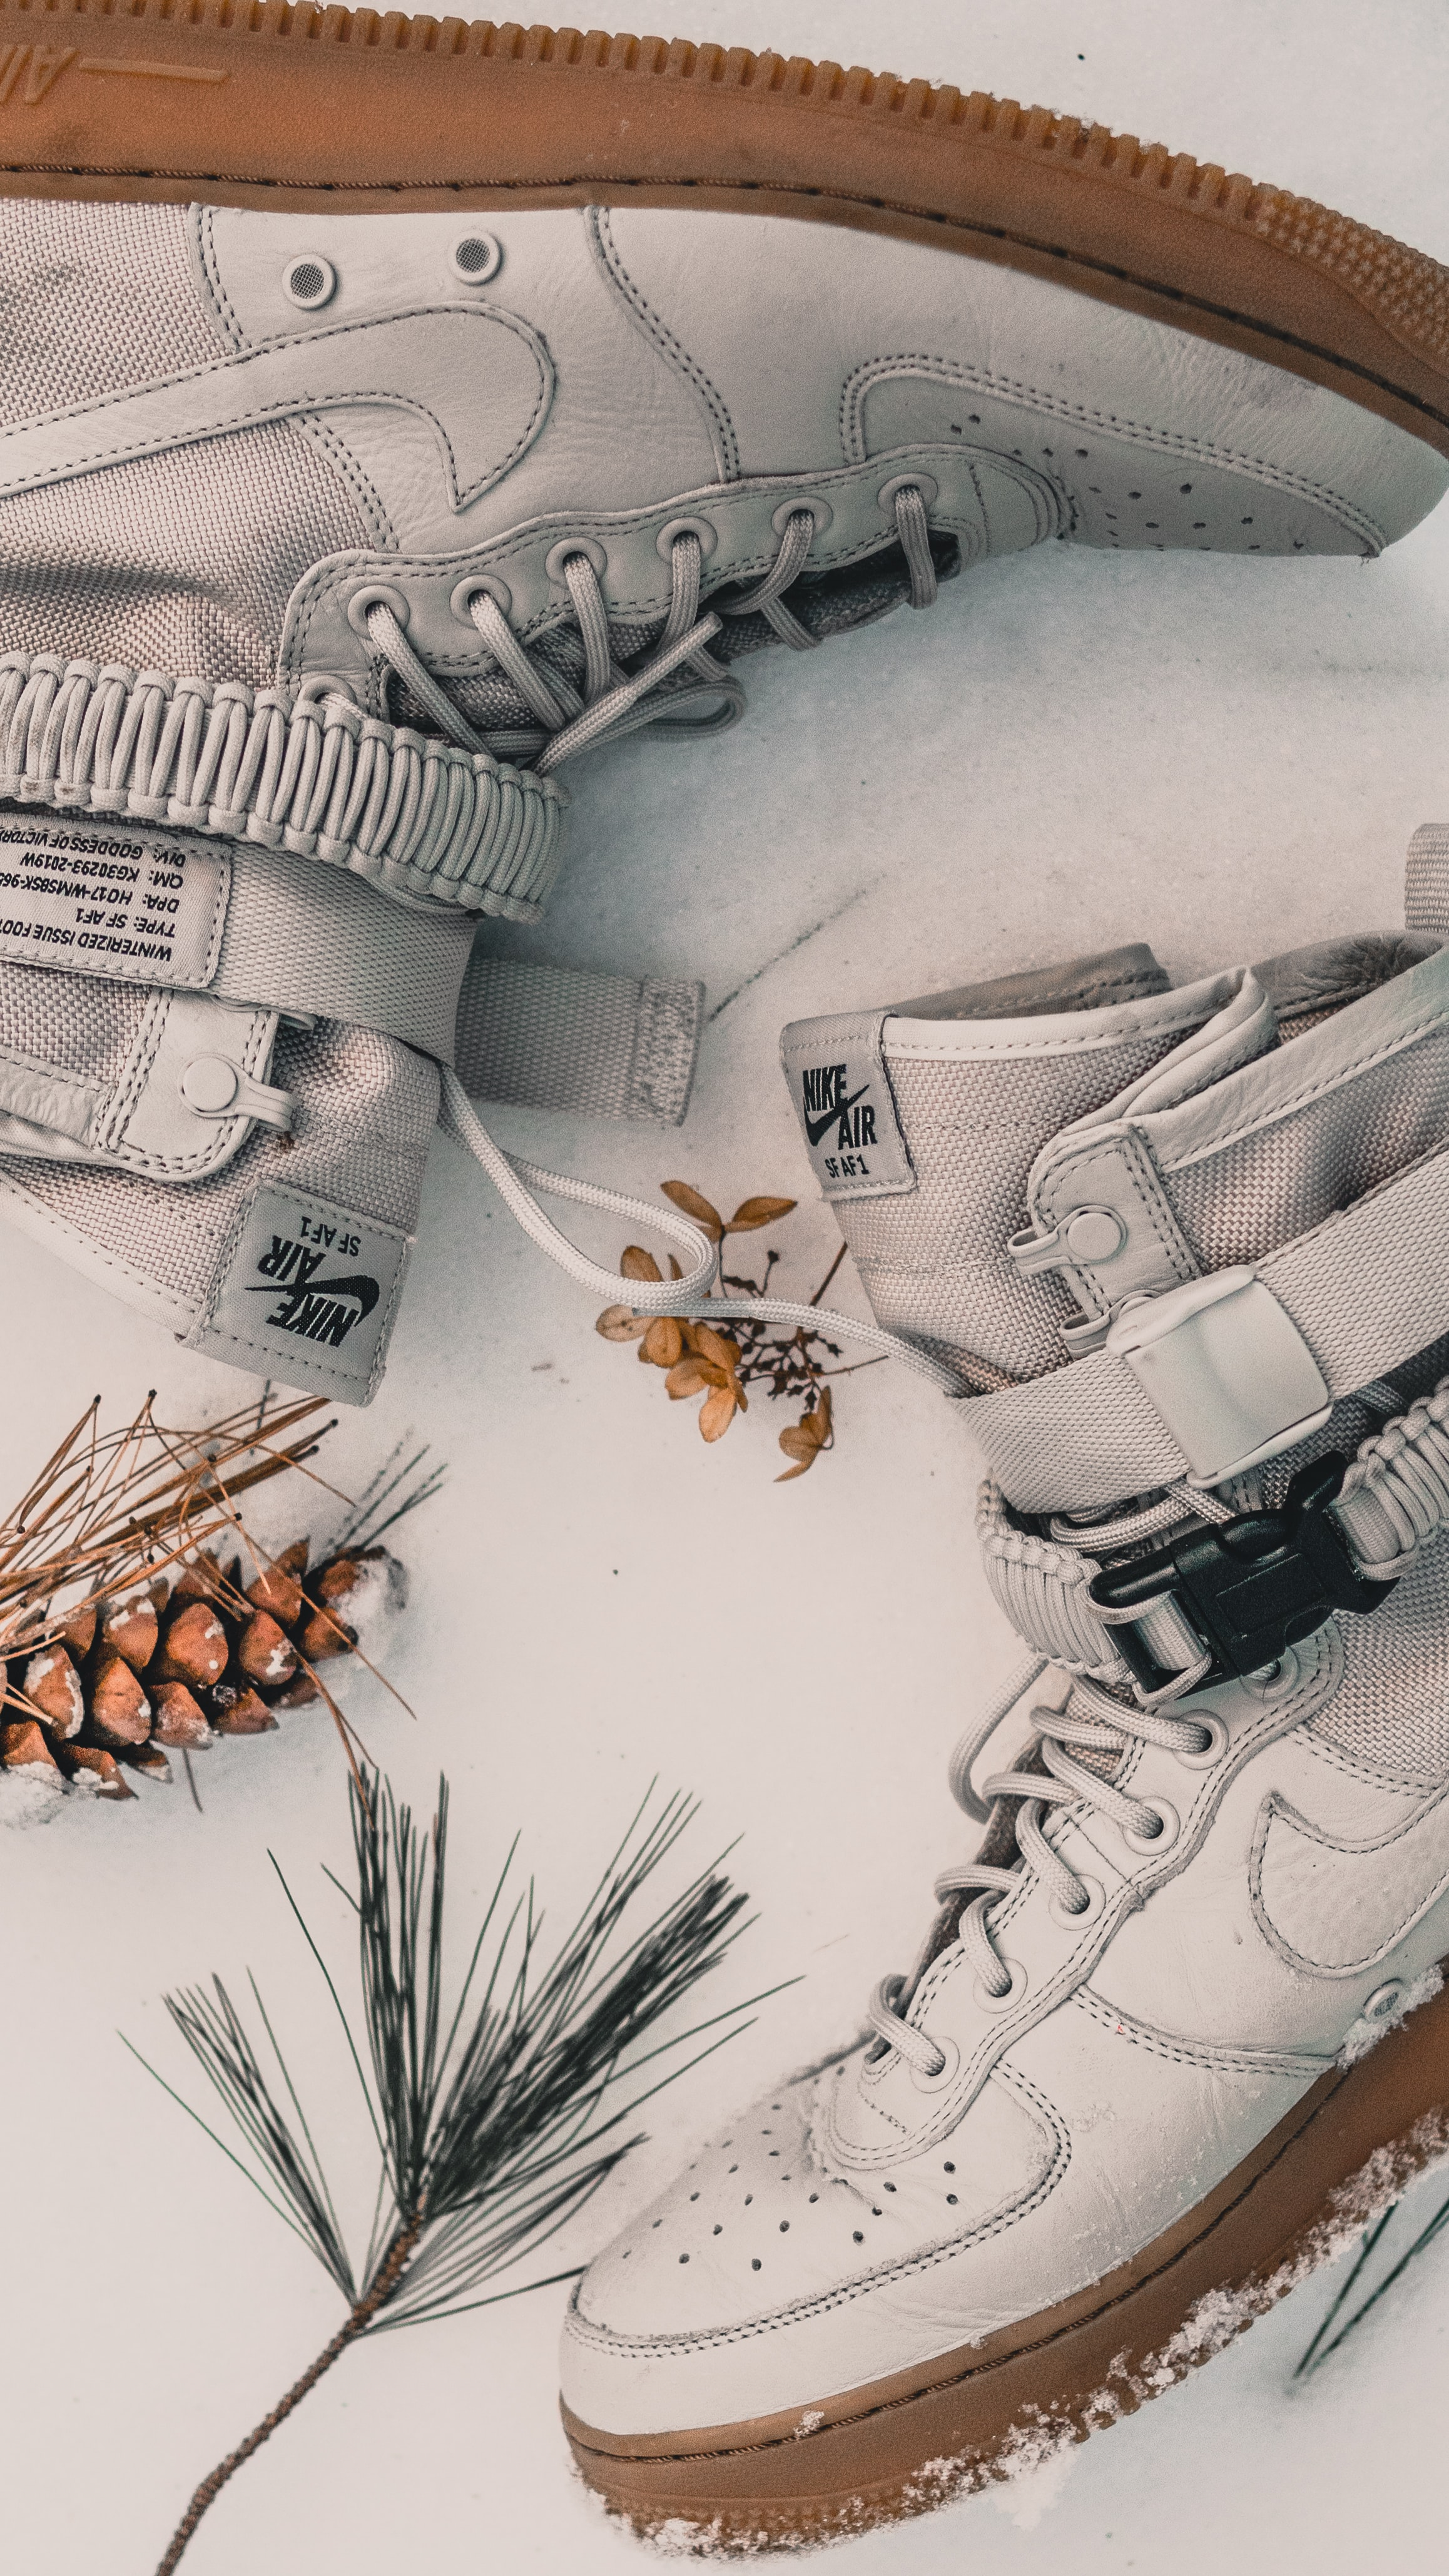 27 Hypebeast Pictures Download Free Images On Unsplash